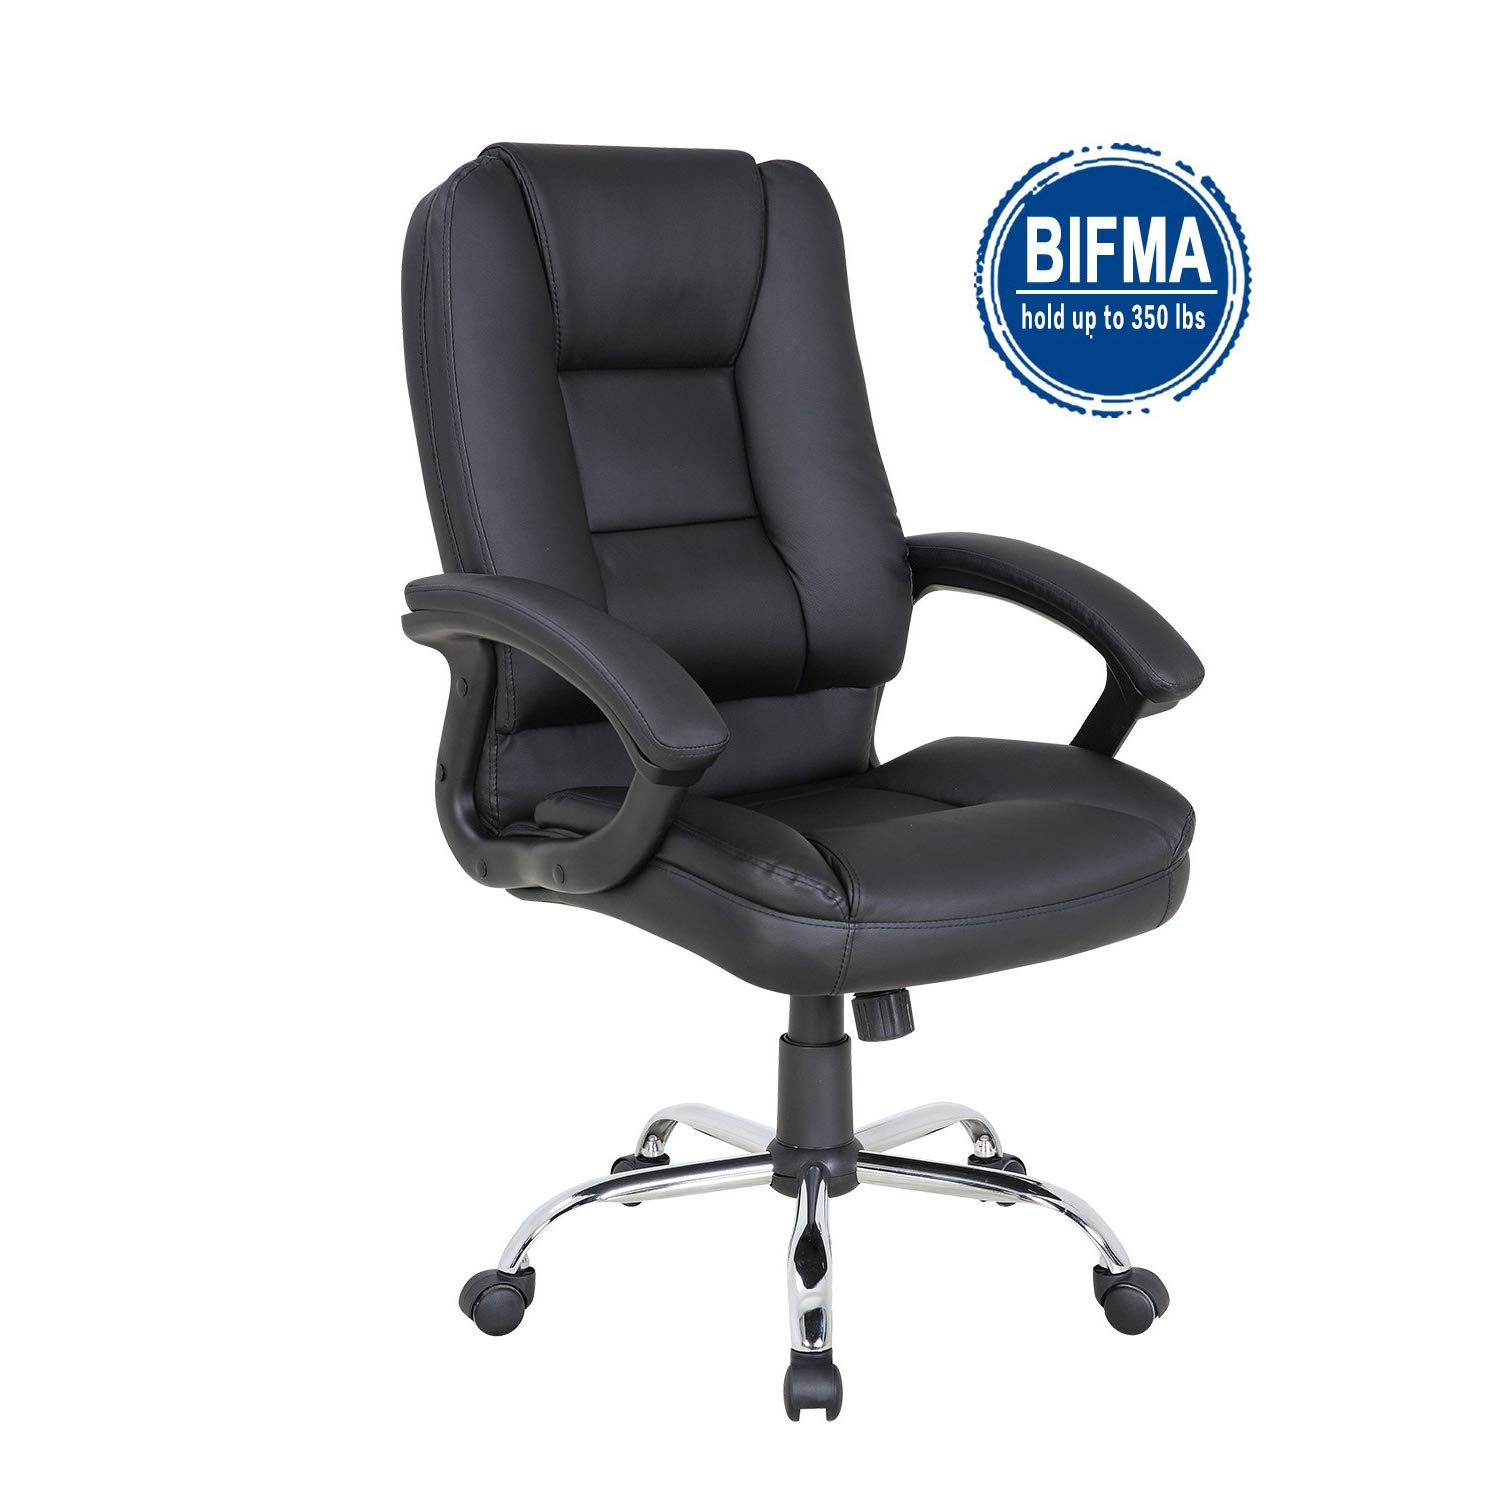 LCH PU Leather Office Chair Swivel Executive Chair with Tilt Function and Thick Seat, Ergonomic Computer Chair Headrest and Lumbar Support 350 LBS (Black) by LCH